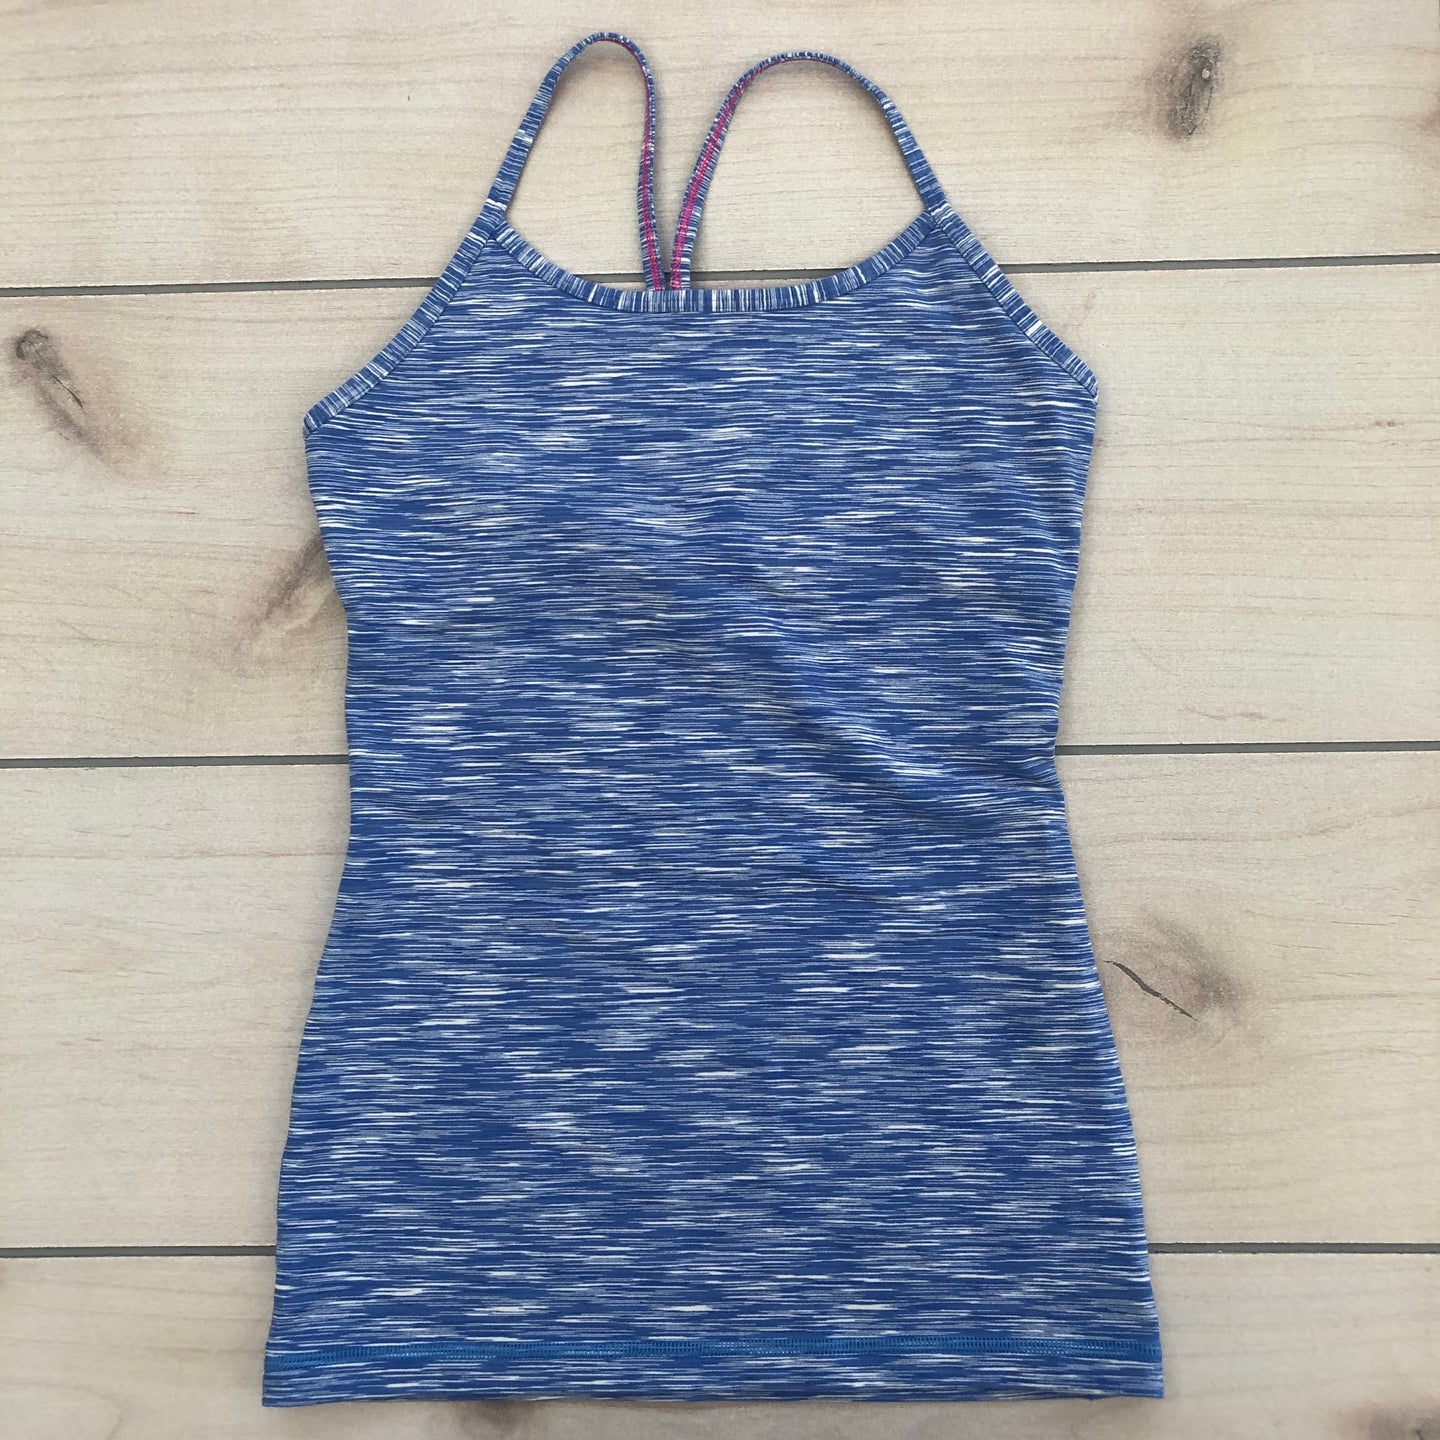 Ivivva Tank Top Size 12